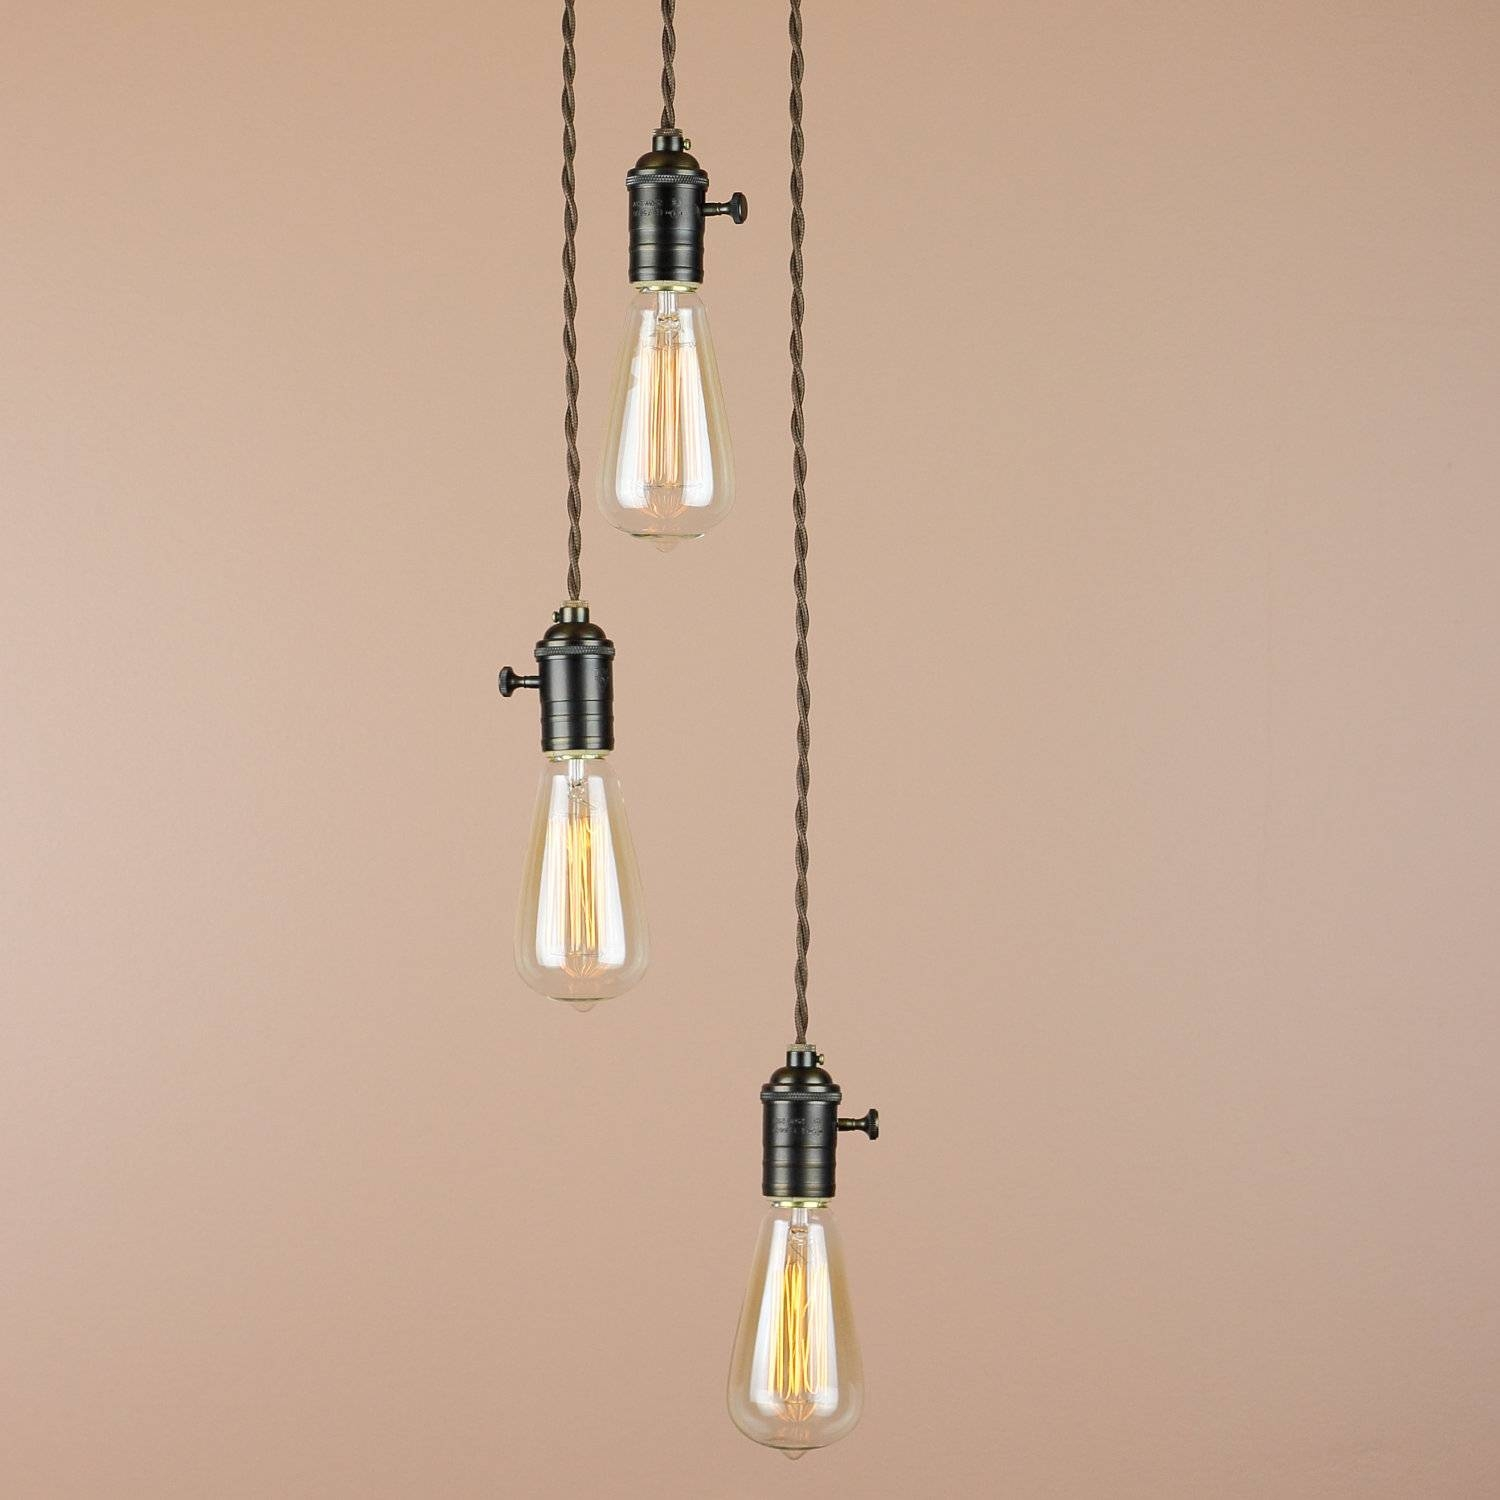 Edison Pendant Light Lighting — All About Home Design : The Proper Pertaining To Edison Bulb Pendant Lights (View 12 of 15)